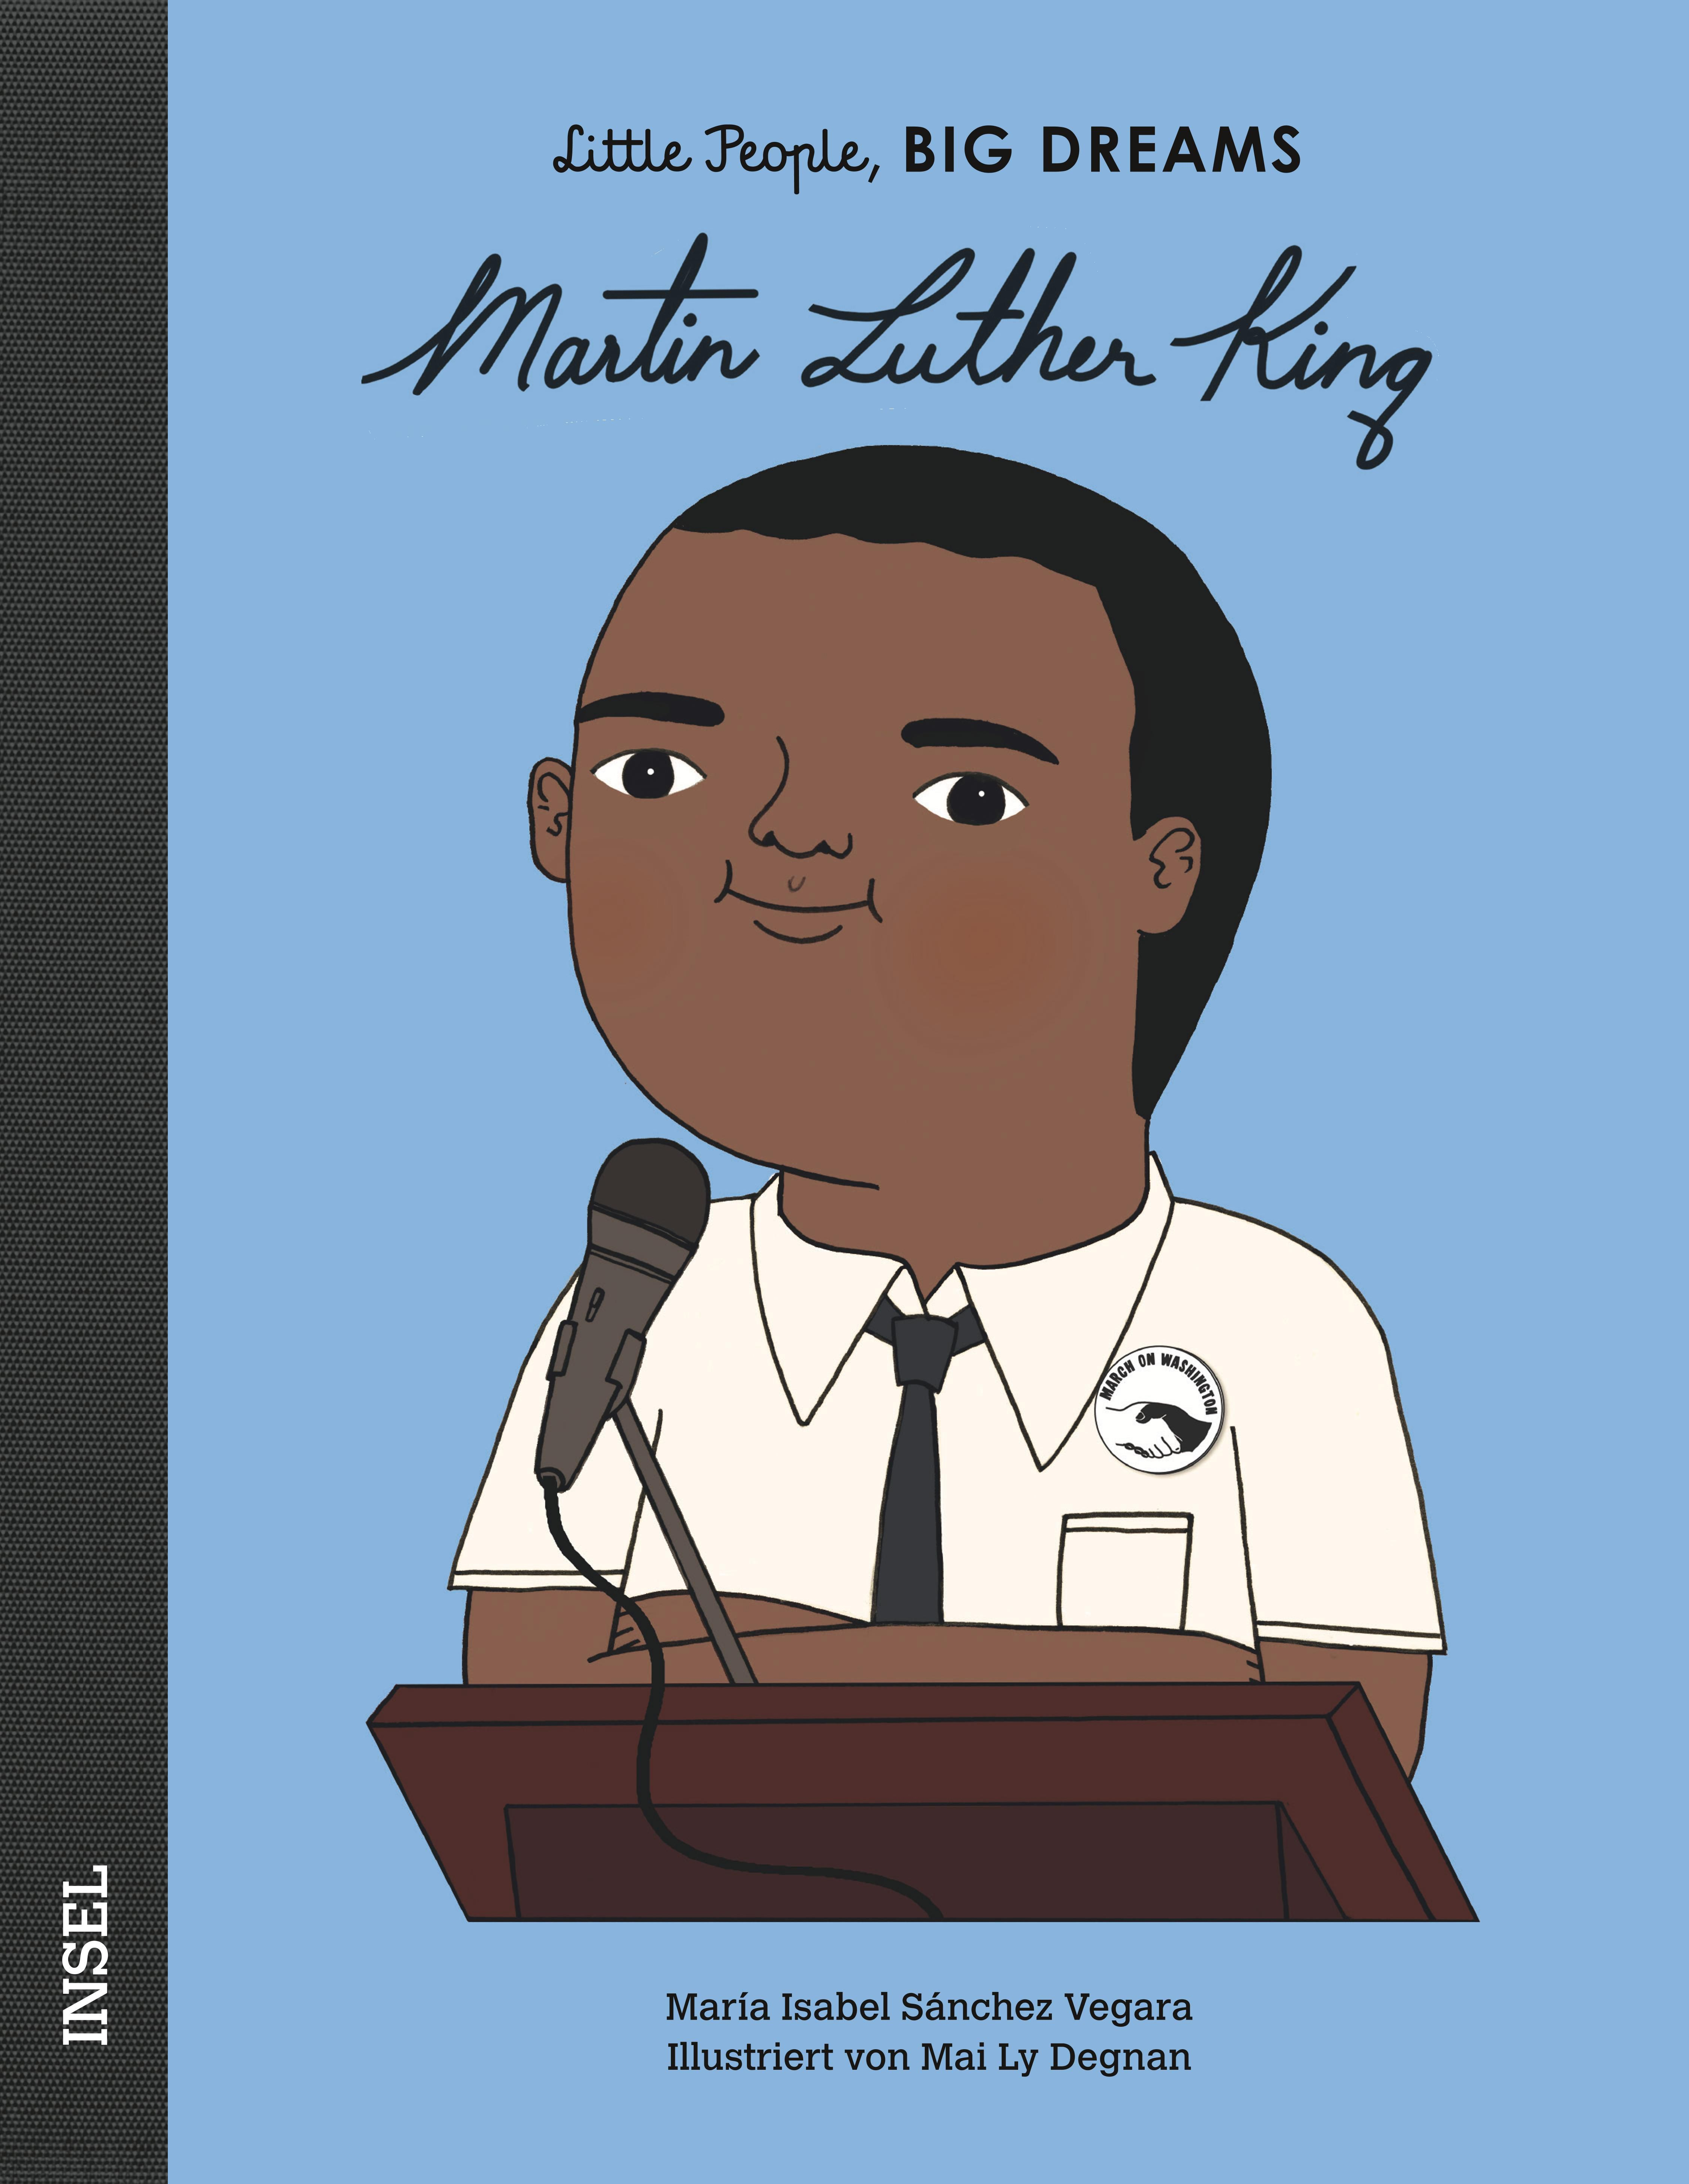 Little People, BIG DREAMS - Martin Luther King